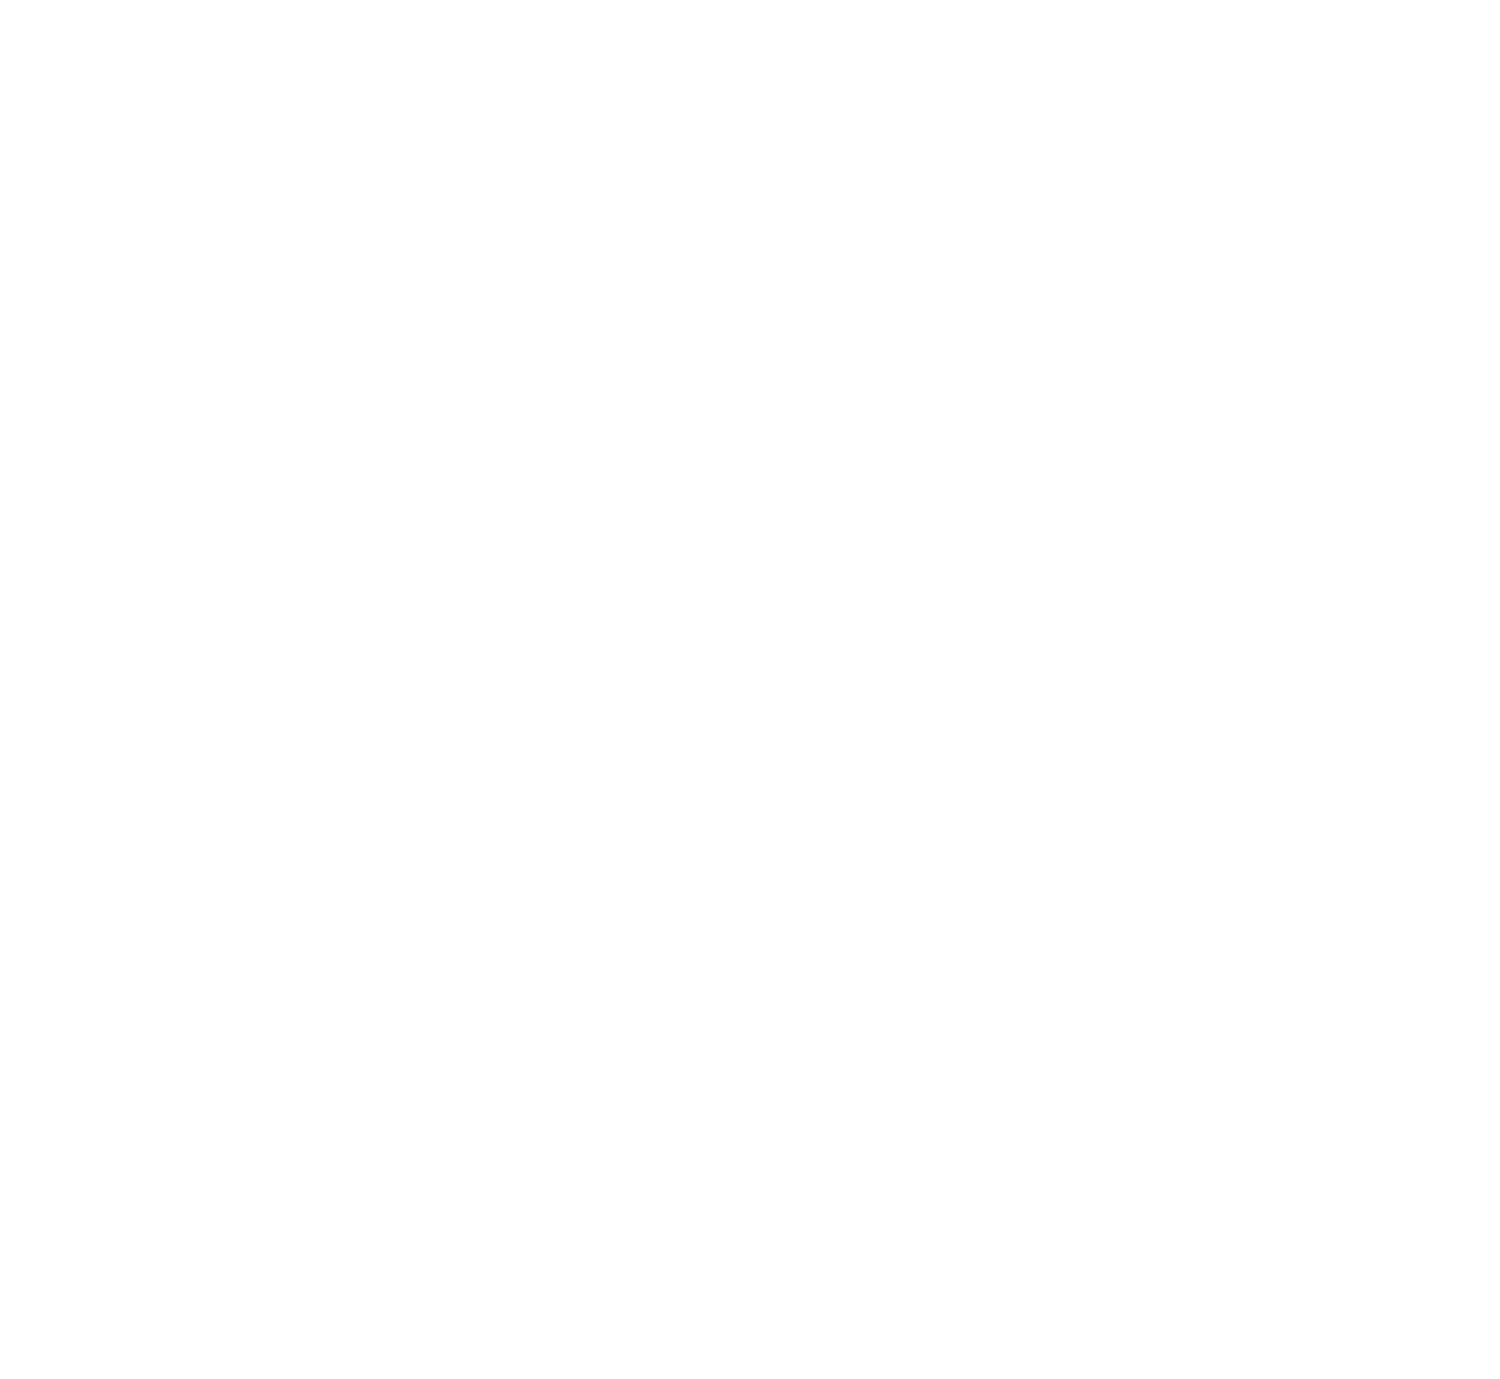 Cramer Drums